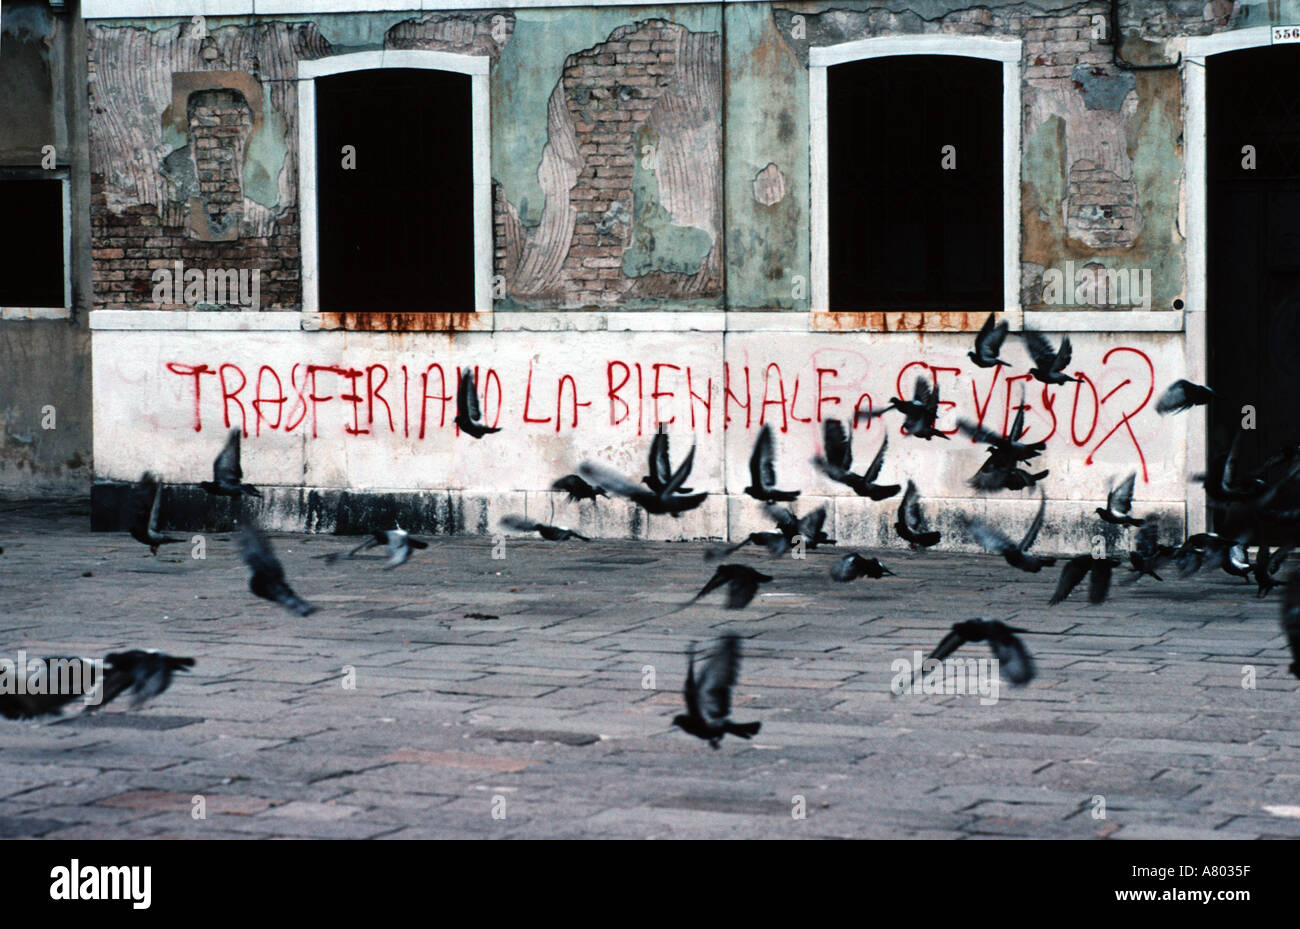 Graffiti in venice at the time of the seveso chemical works disaster in the 1970s